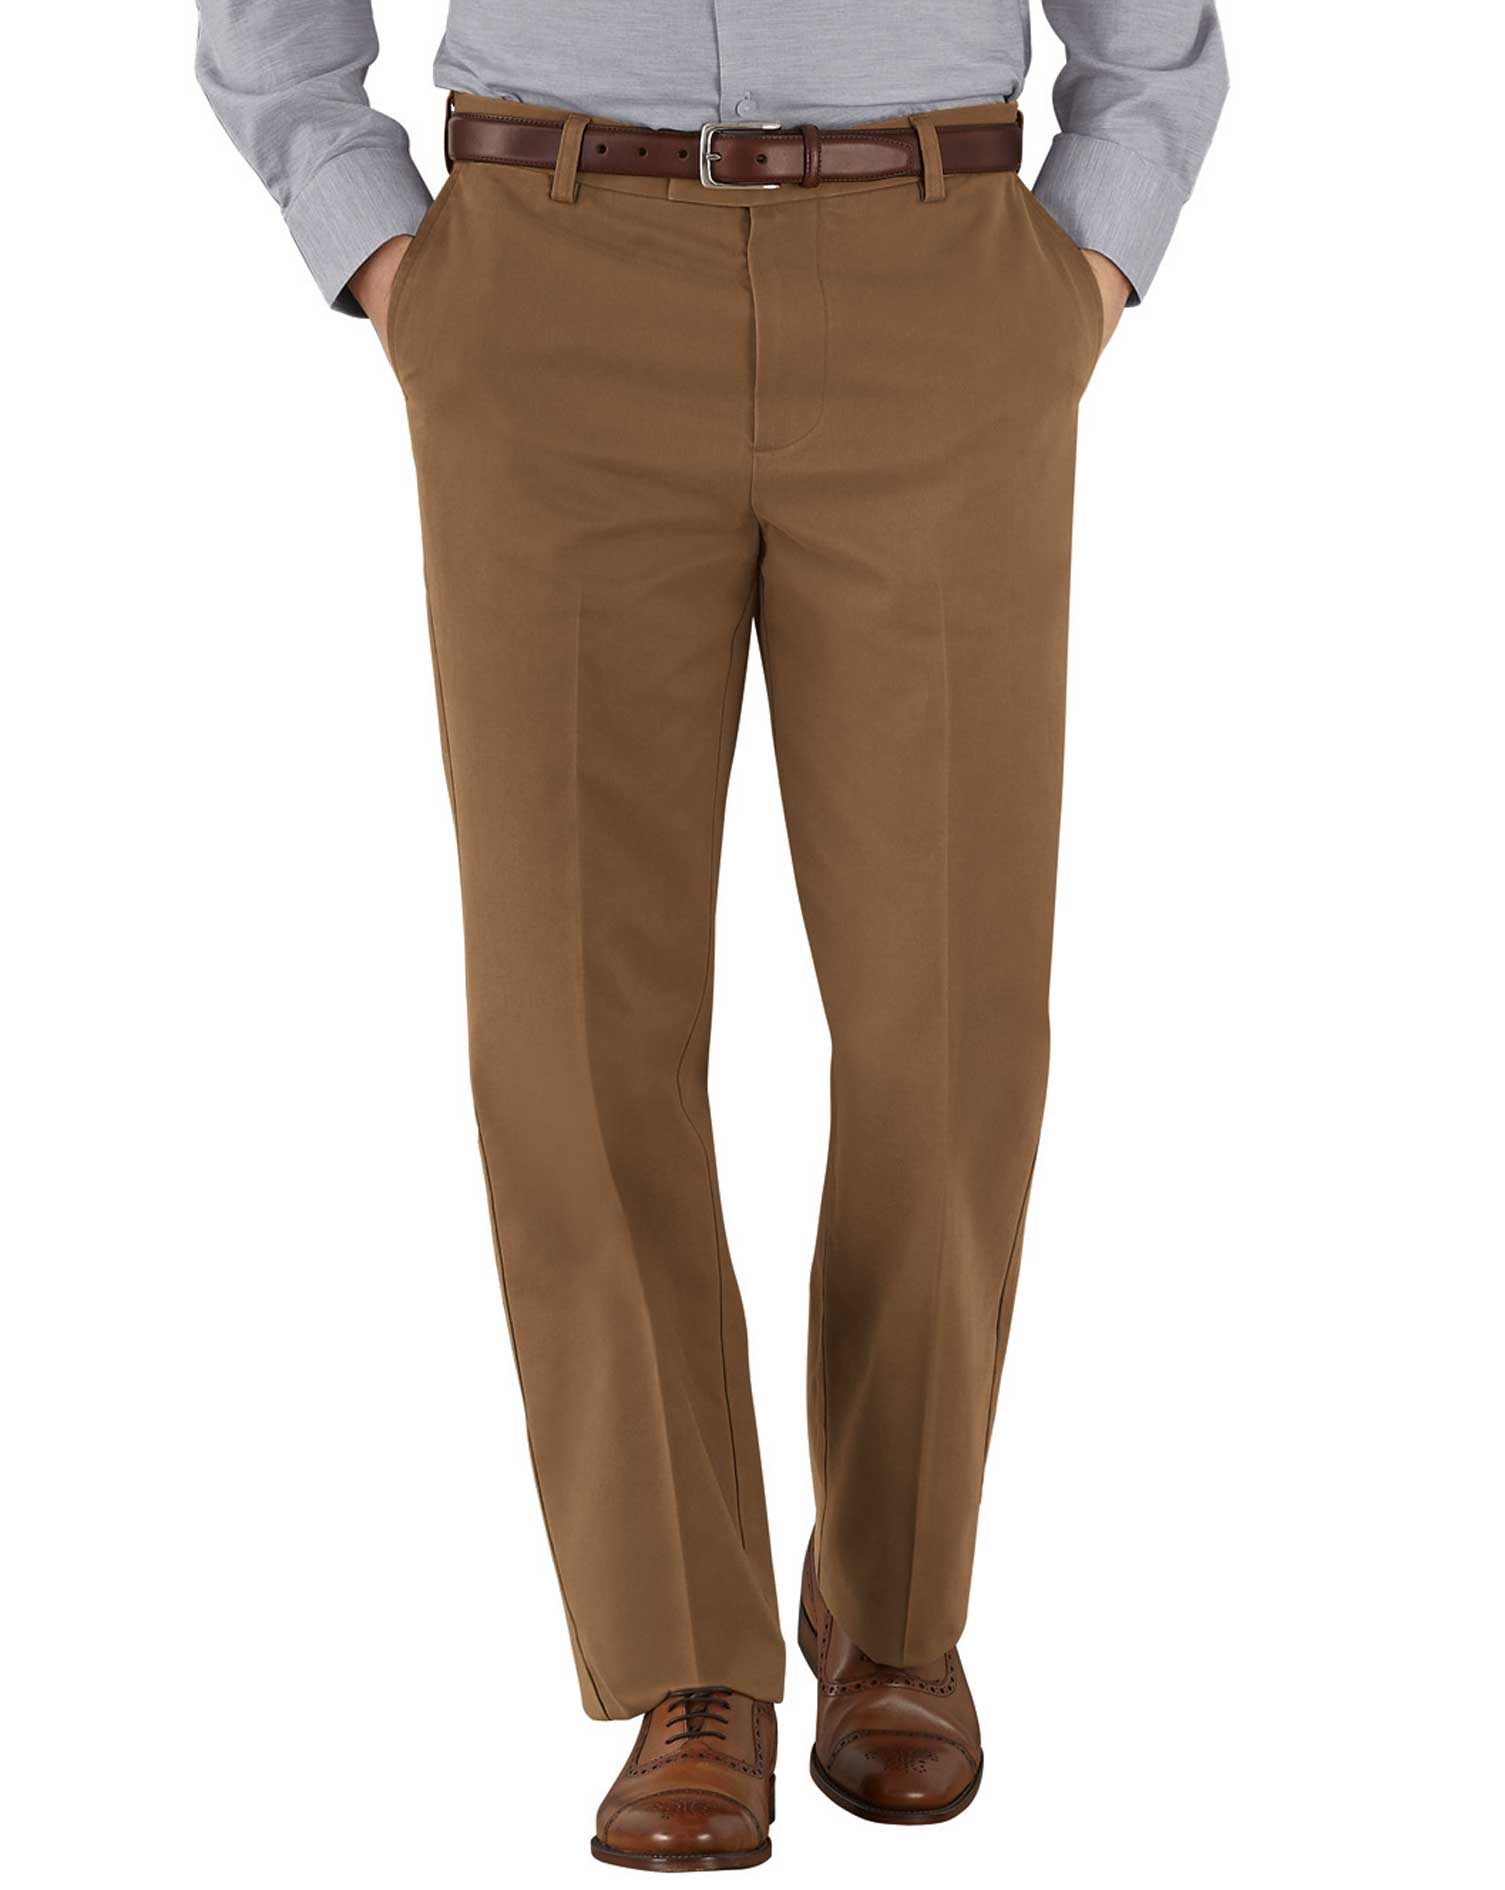 Camel Classic Fit Flat Front Non-Iron Cotton Chino Trousers Size W34 L34 by Charles Tyrwhitt